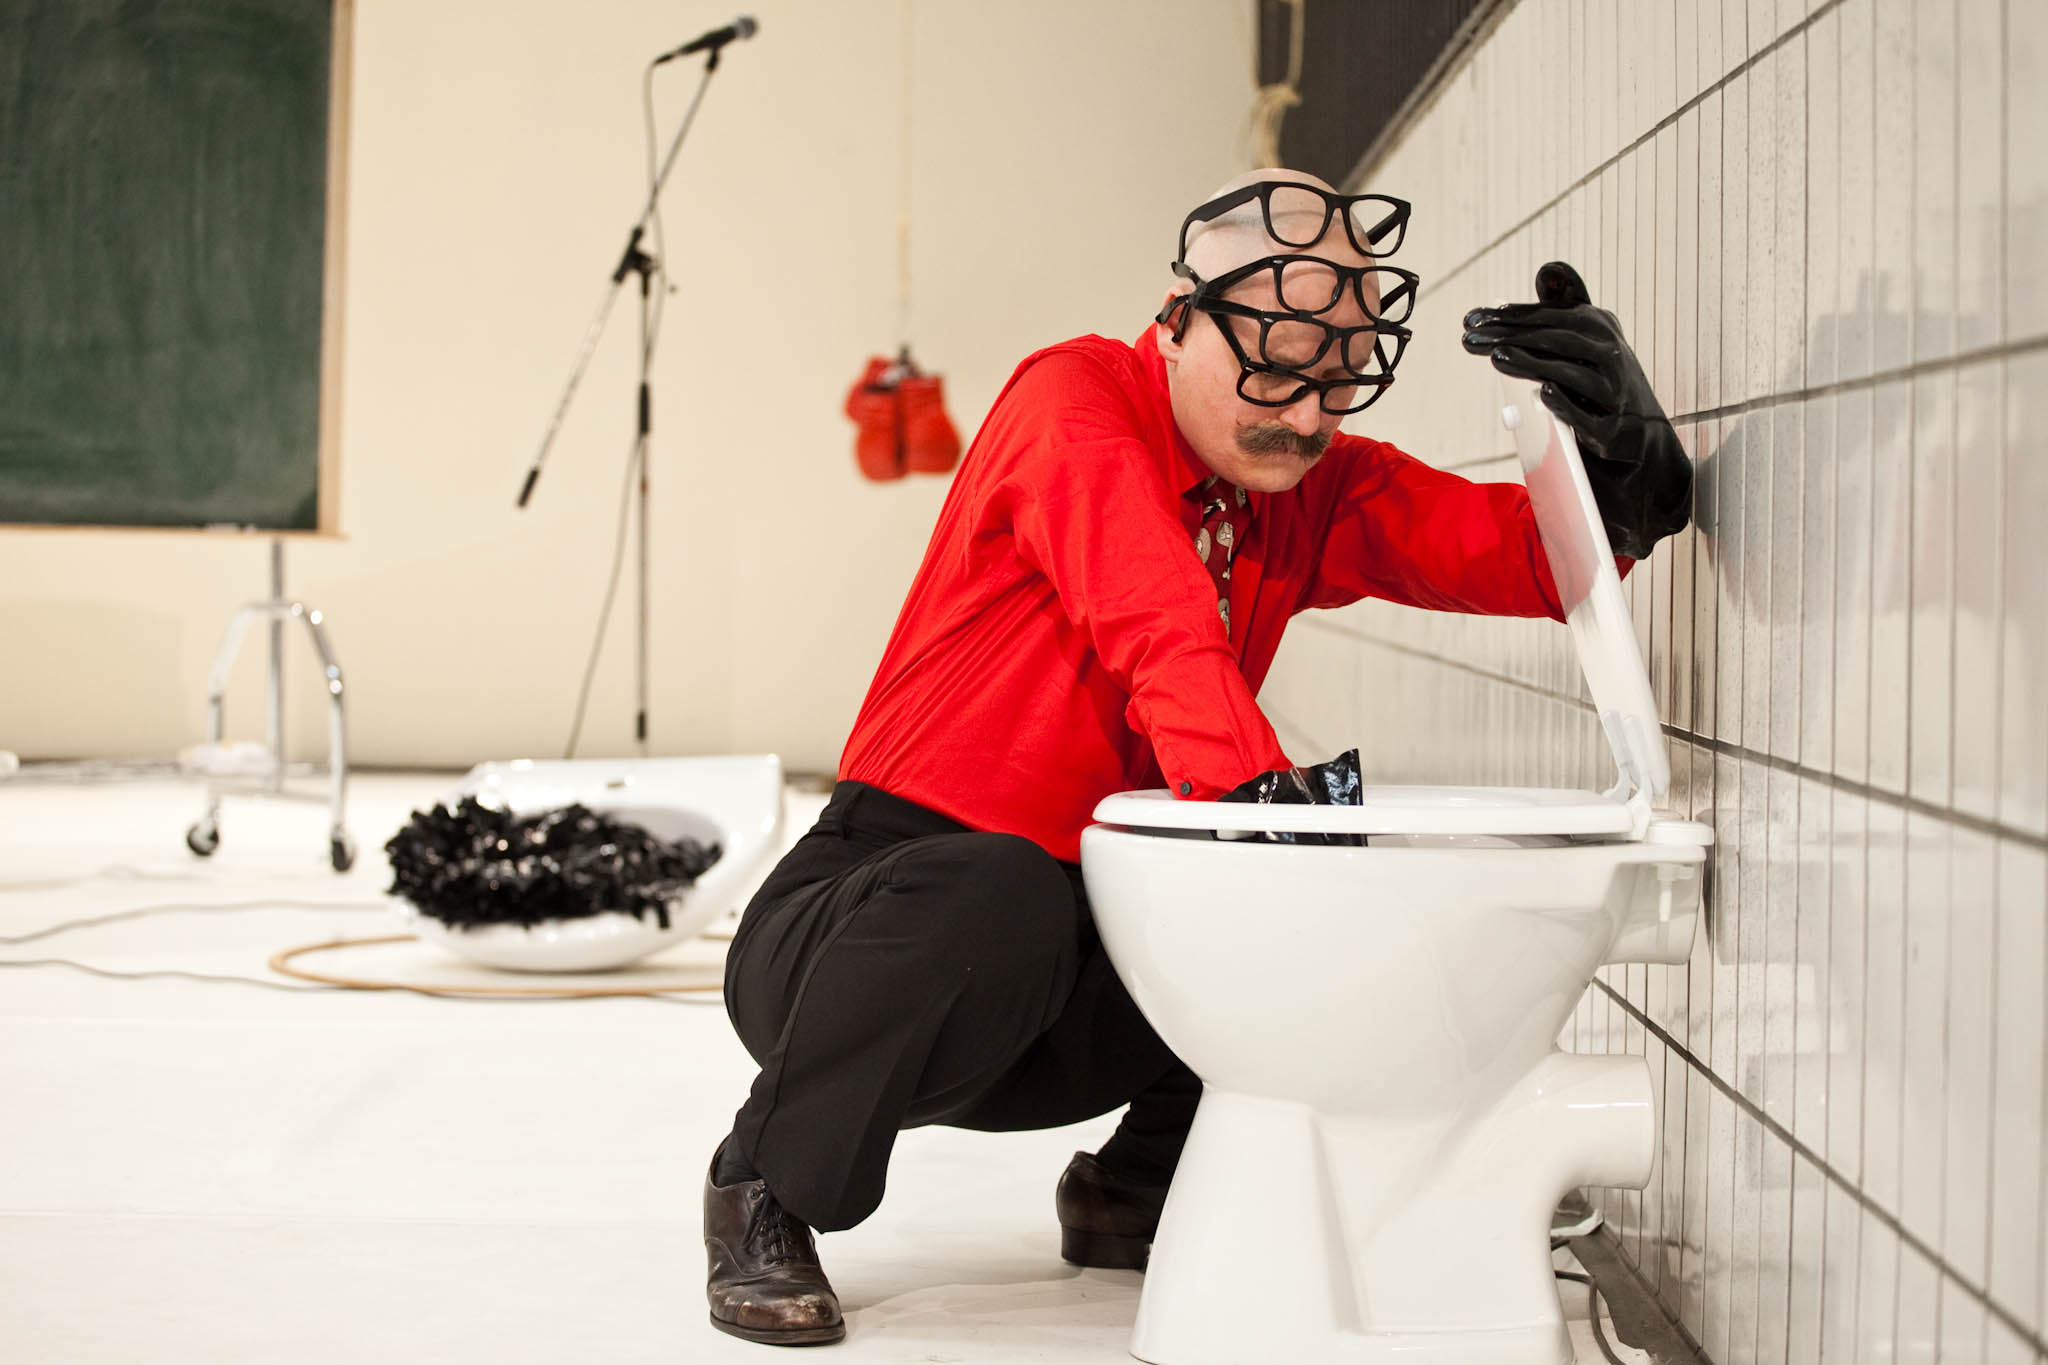 Markland reaches into a toilet bowl. A porcelain sink filled with shiny black material sits in the background. (photo: Sven Hagolani)